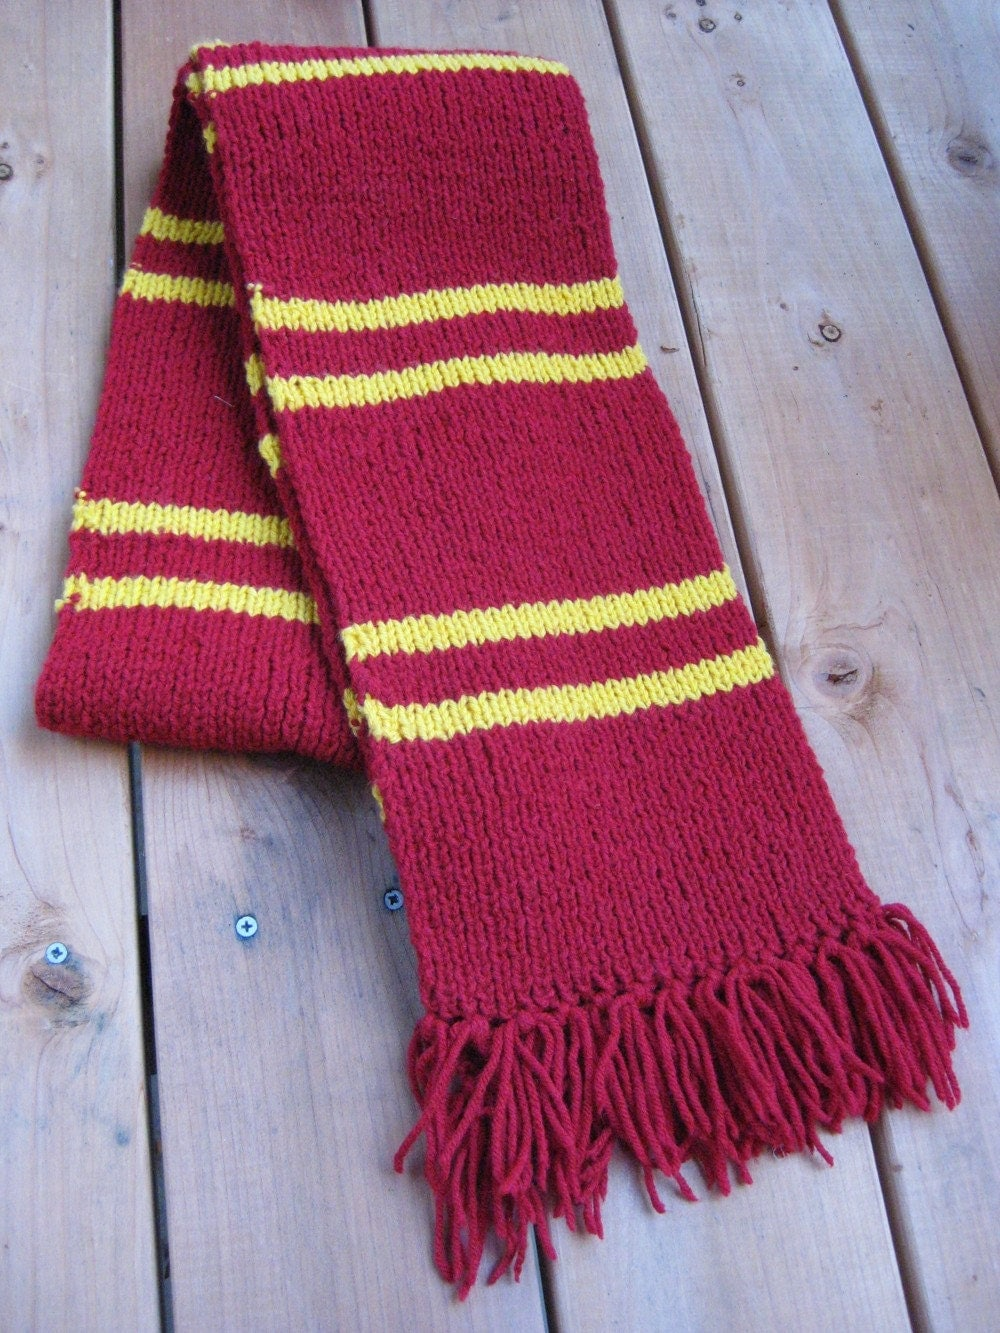 Knitting Pattern For Gryffindor Scarf : Harry Potter Gryffindor scarf